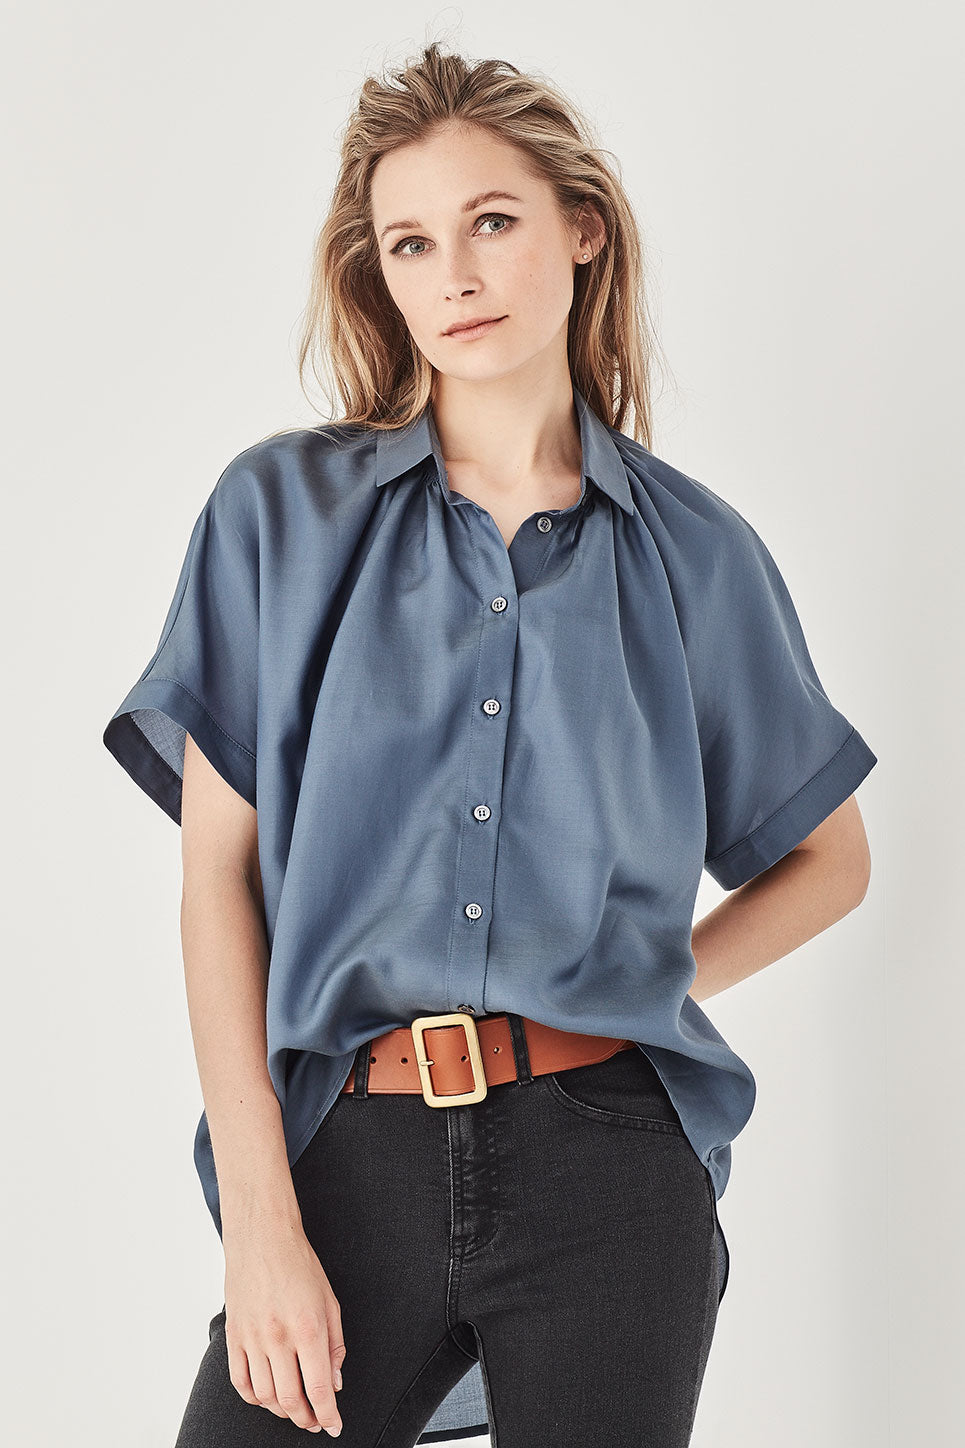 The Morrisey Blouse in Cornflower